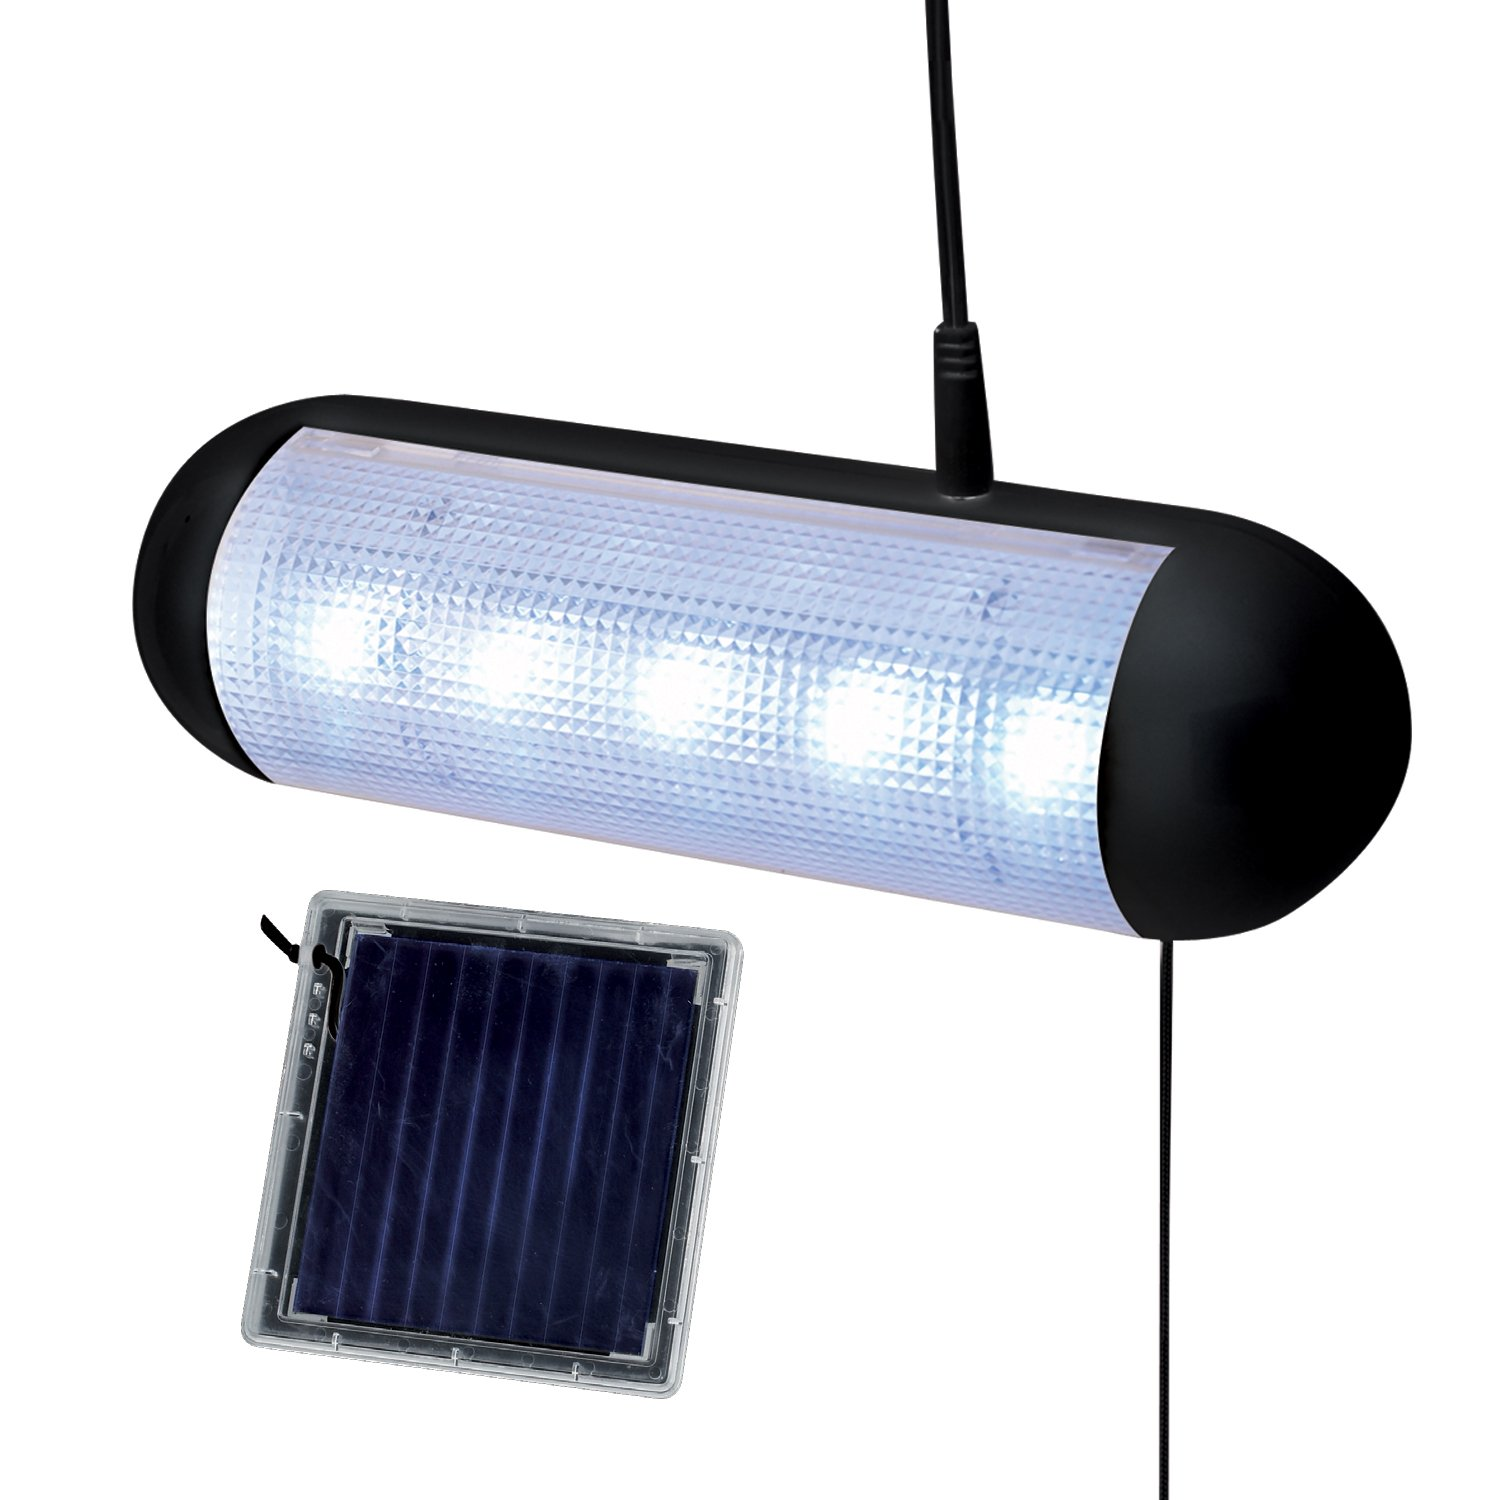 Merveilleux Solalite 5 LED Solar Powered Rechargeable Garage Greenhouse Shed Light:  Amazon.co.uk: Garden U0026 Outdoors